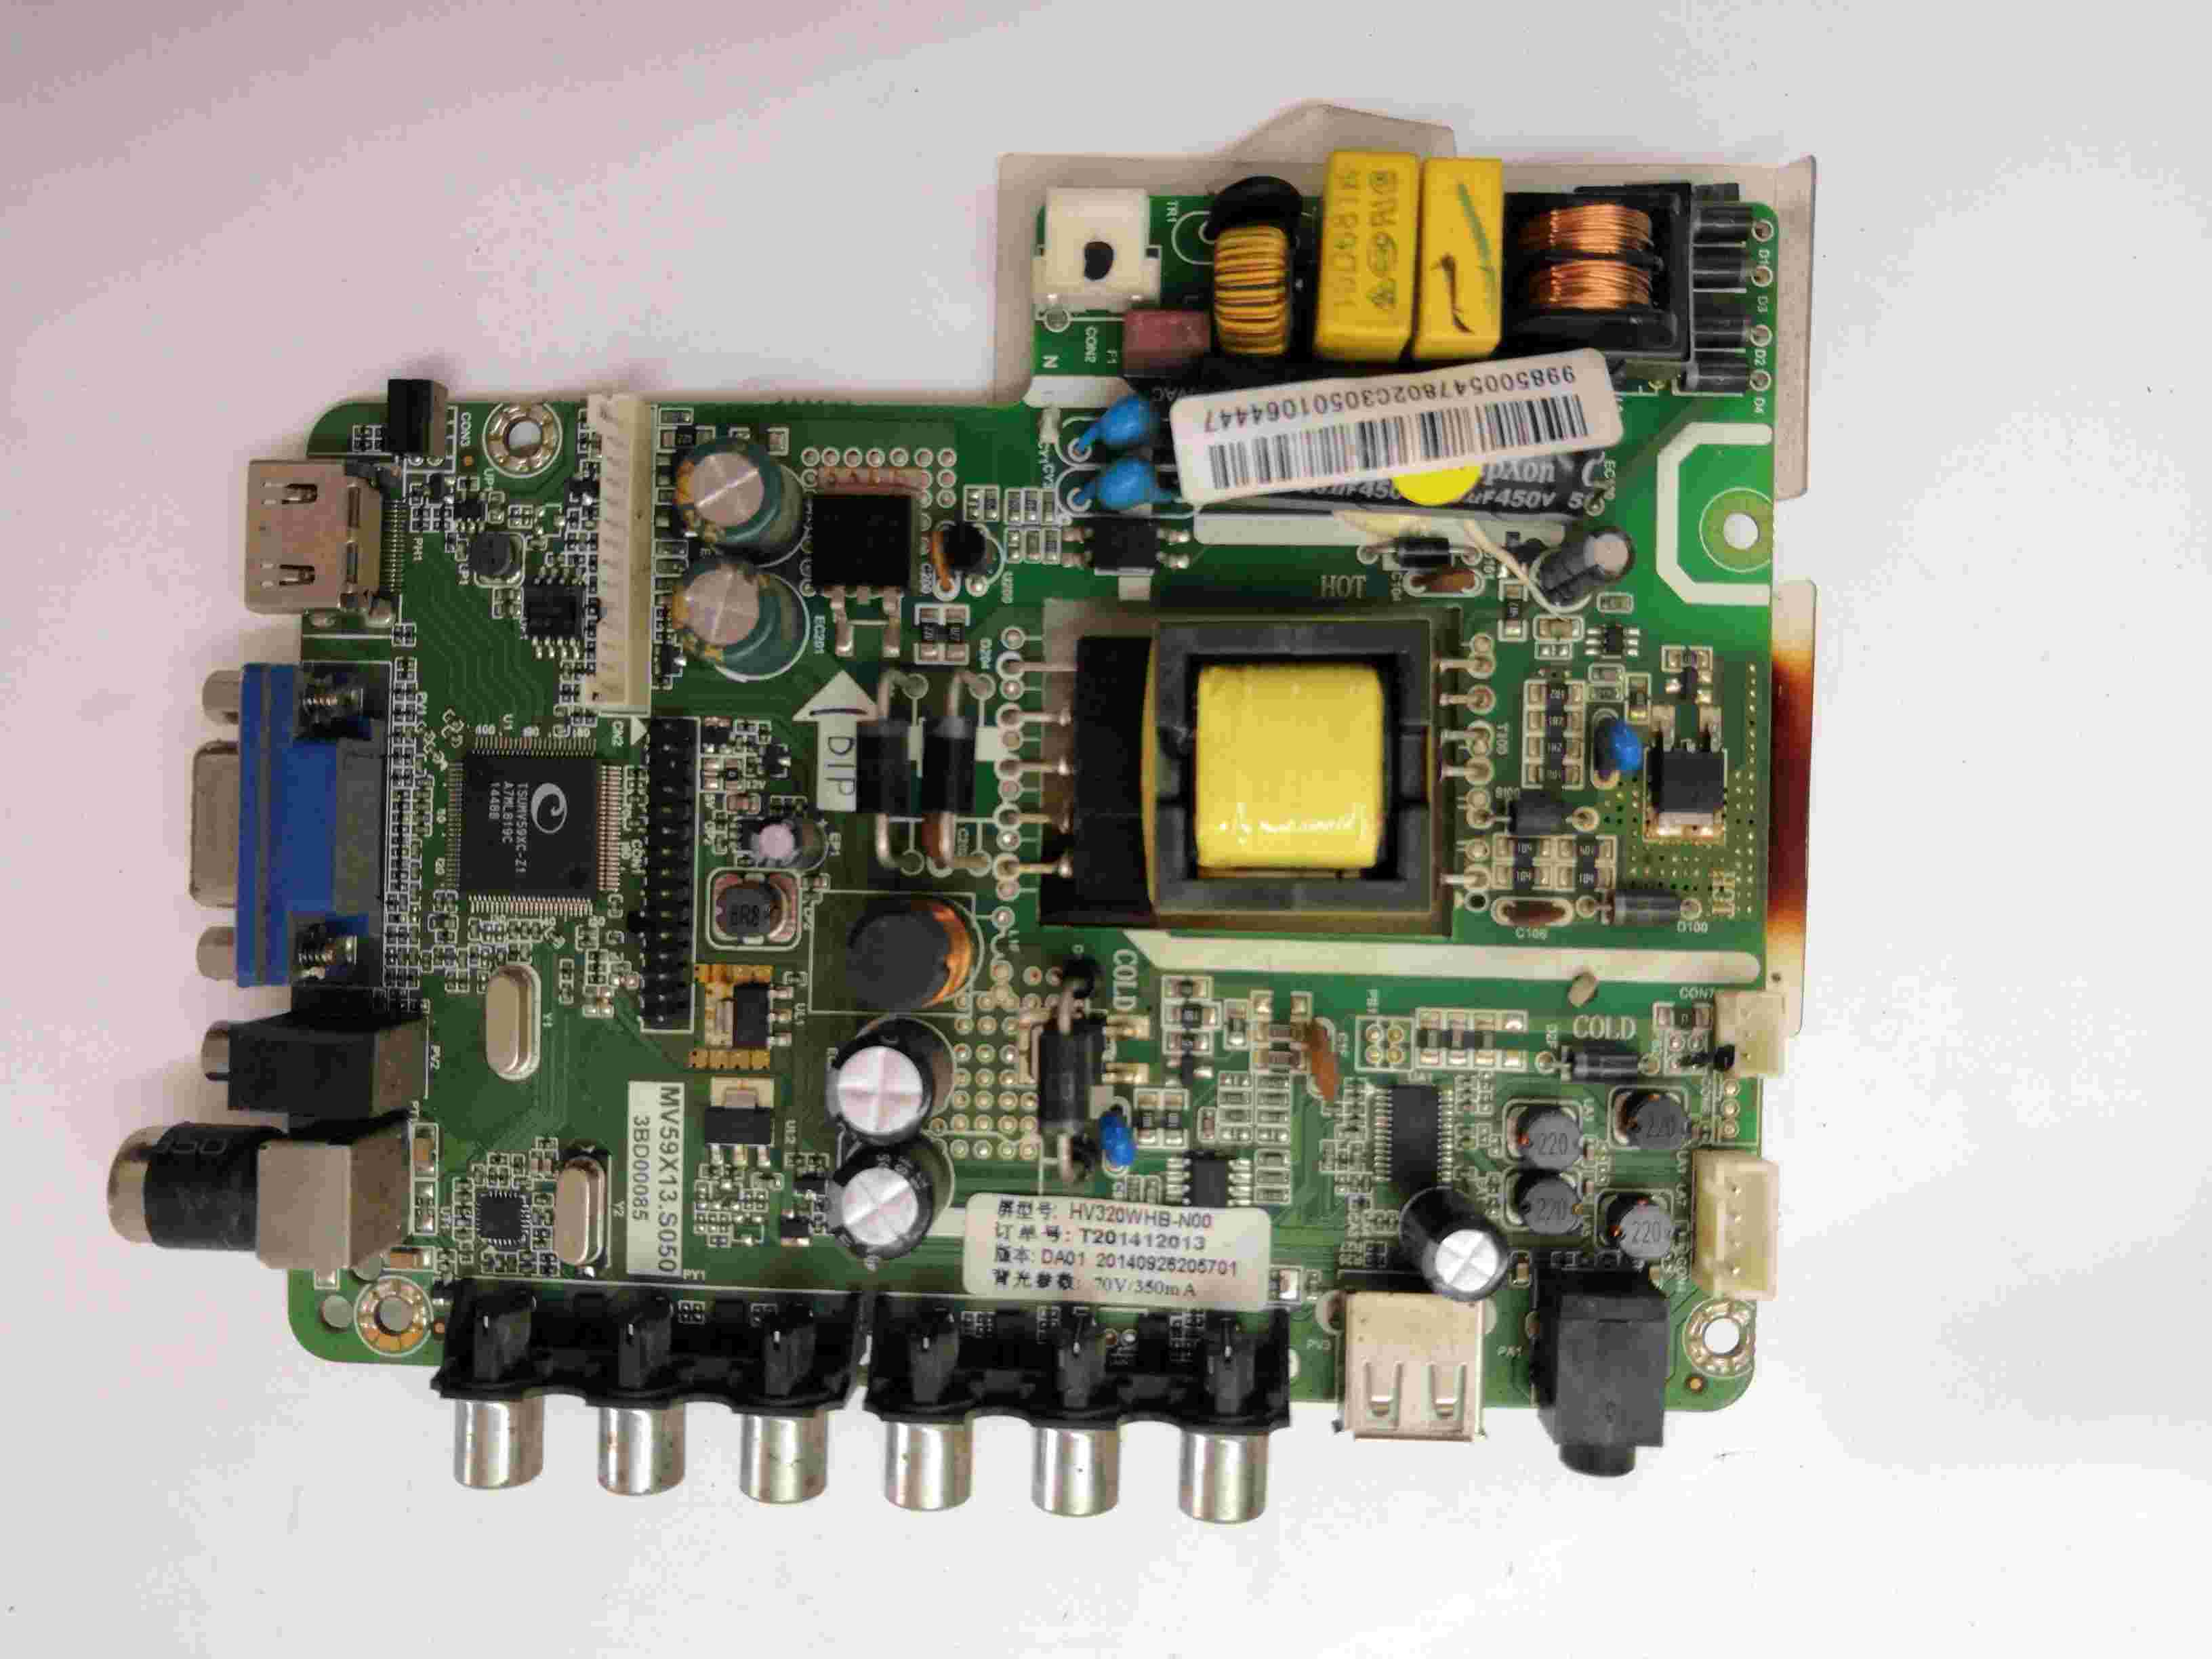 Knowledgeable Main Board Power Board Circuit Logic Board Constant Current Board Led 32v6 Led 32538m Mv59x13.s050 Screen Cn32tu727/726 Audio & Video Replacement Parts